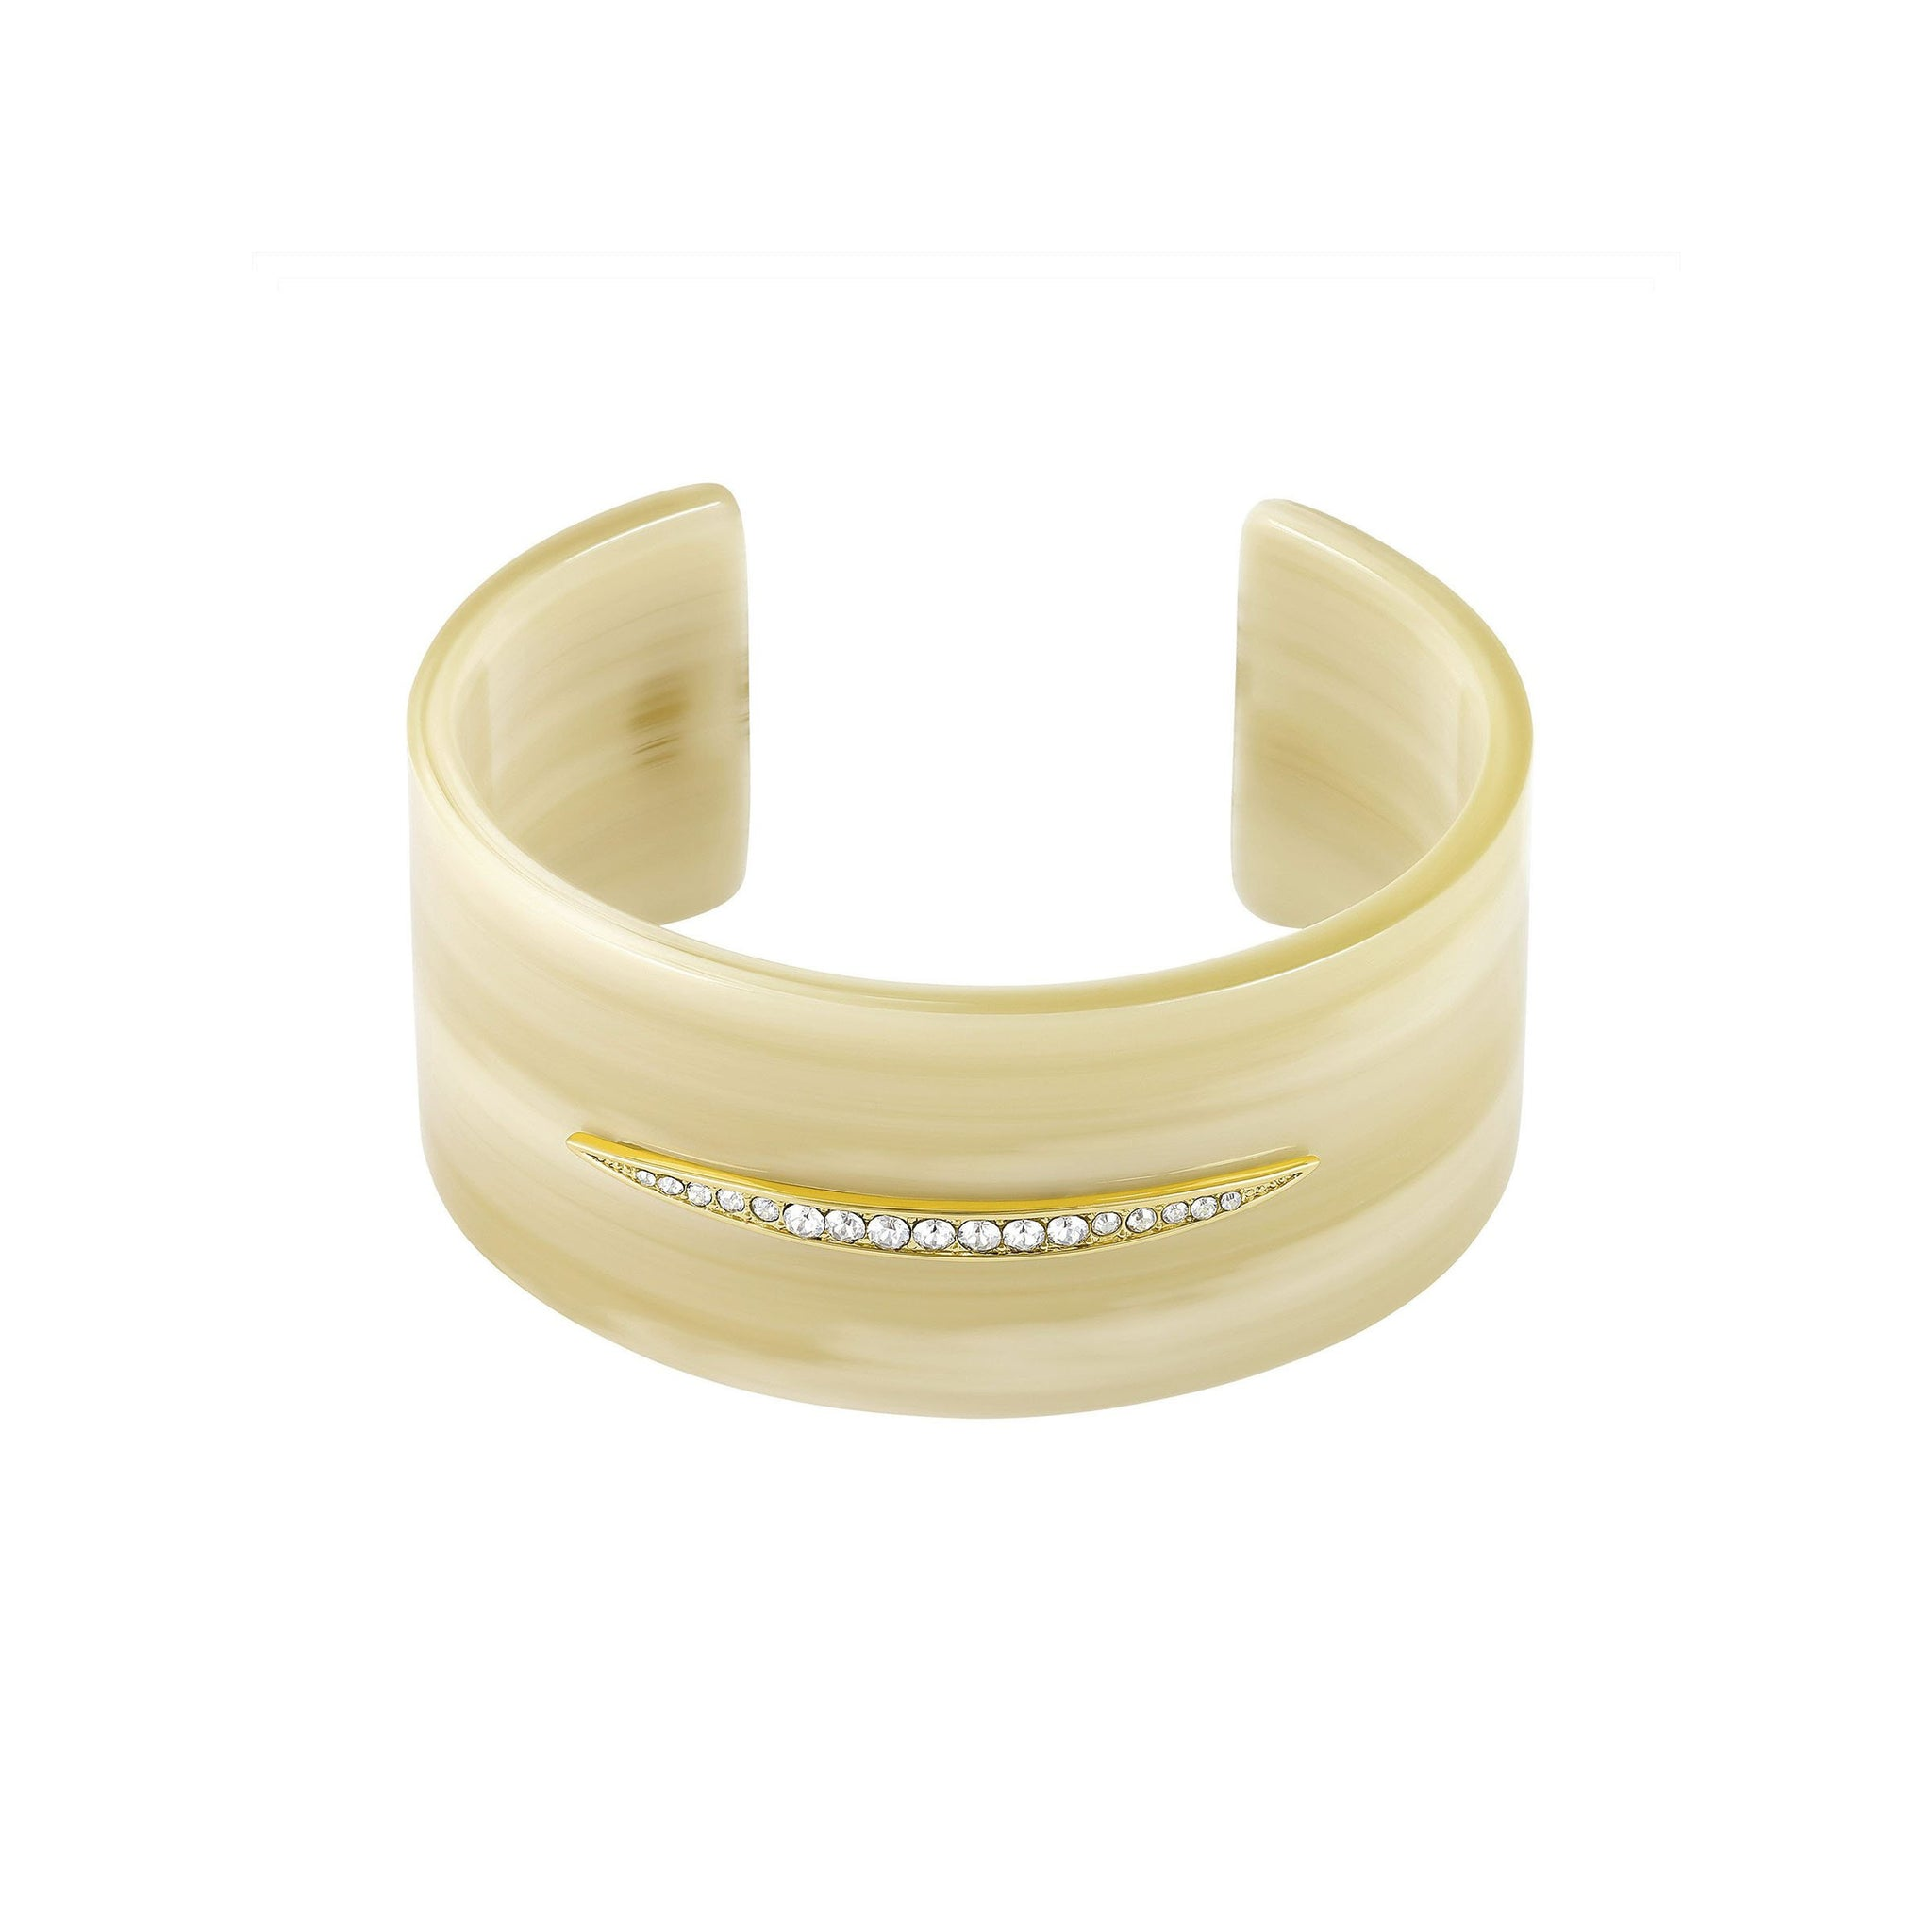 Resin Wide Cuff - Crystal/White Resin/Gold Plated